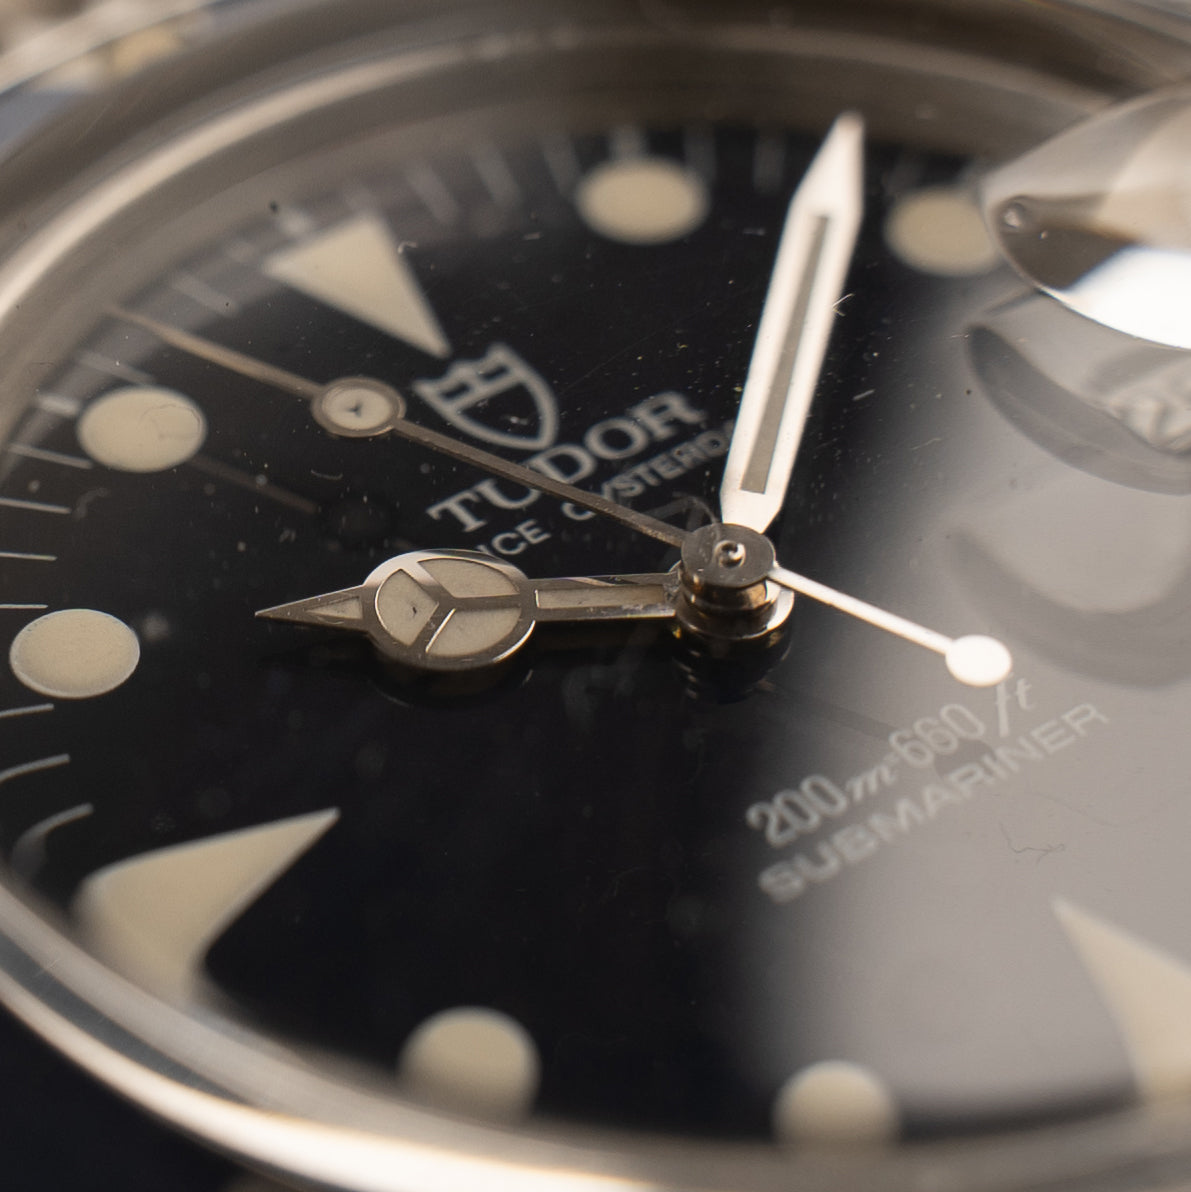 Tudor: Stepping Out of Rolex's Shadow?